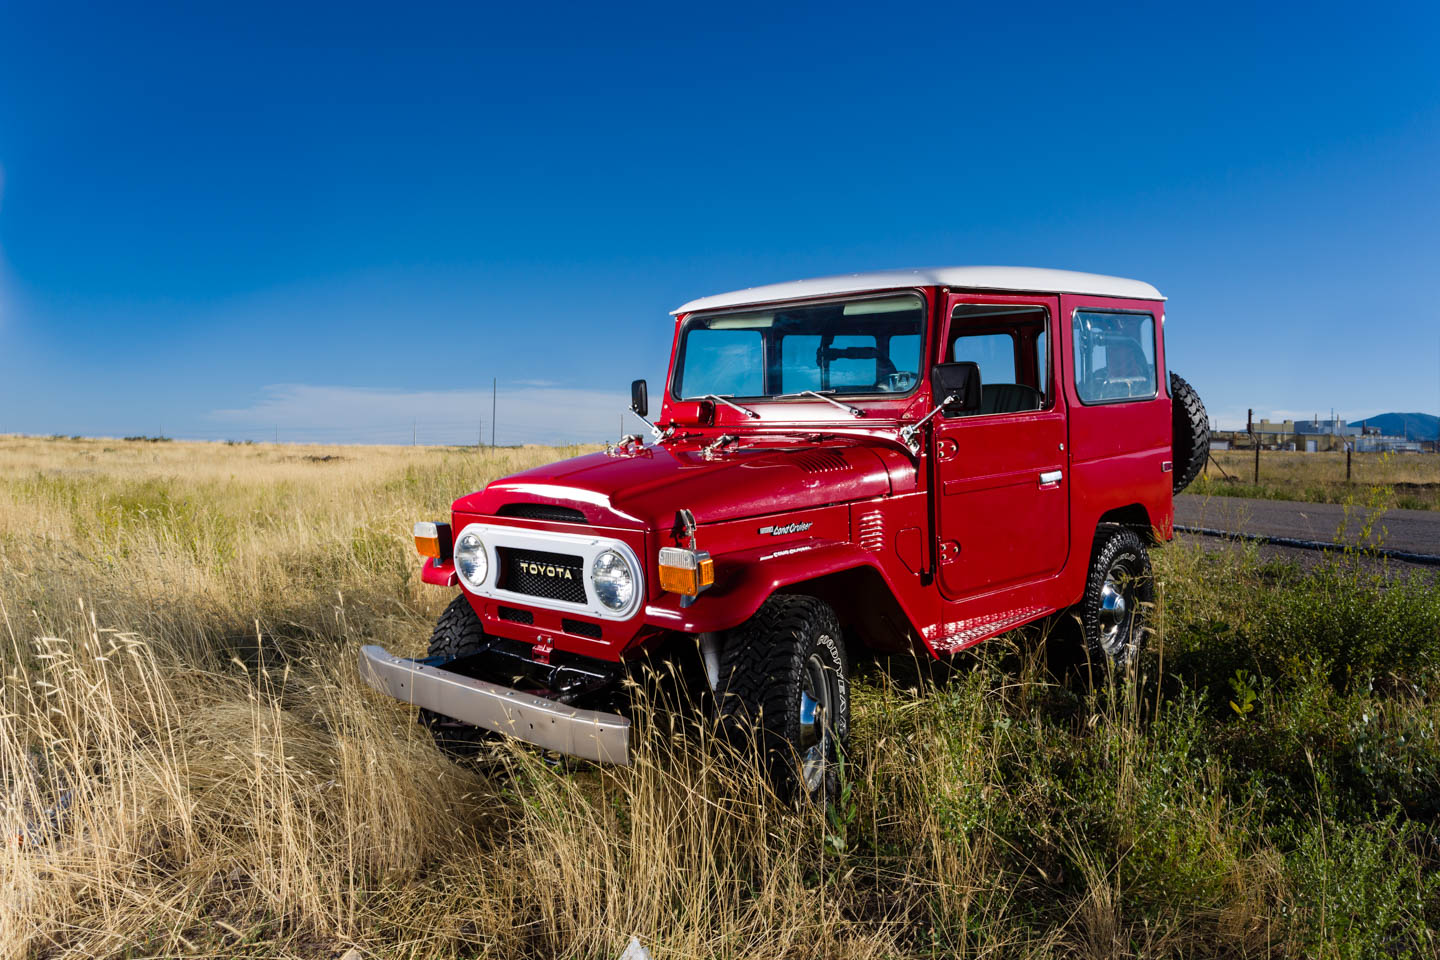 Classic Restored Toyota Land Cruiser From The 1970s Dav